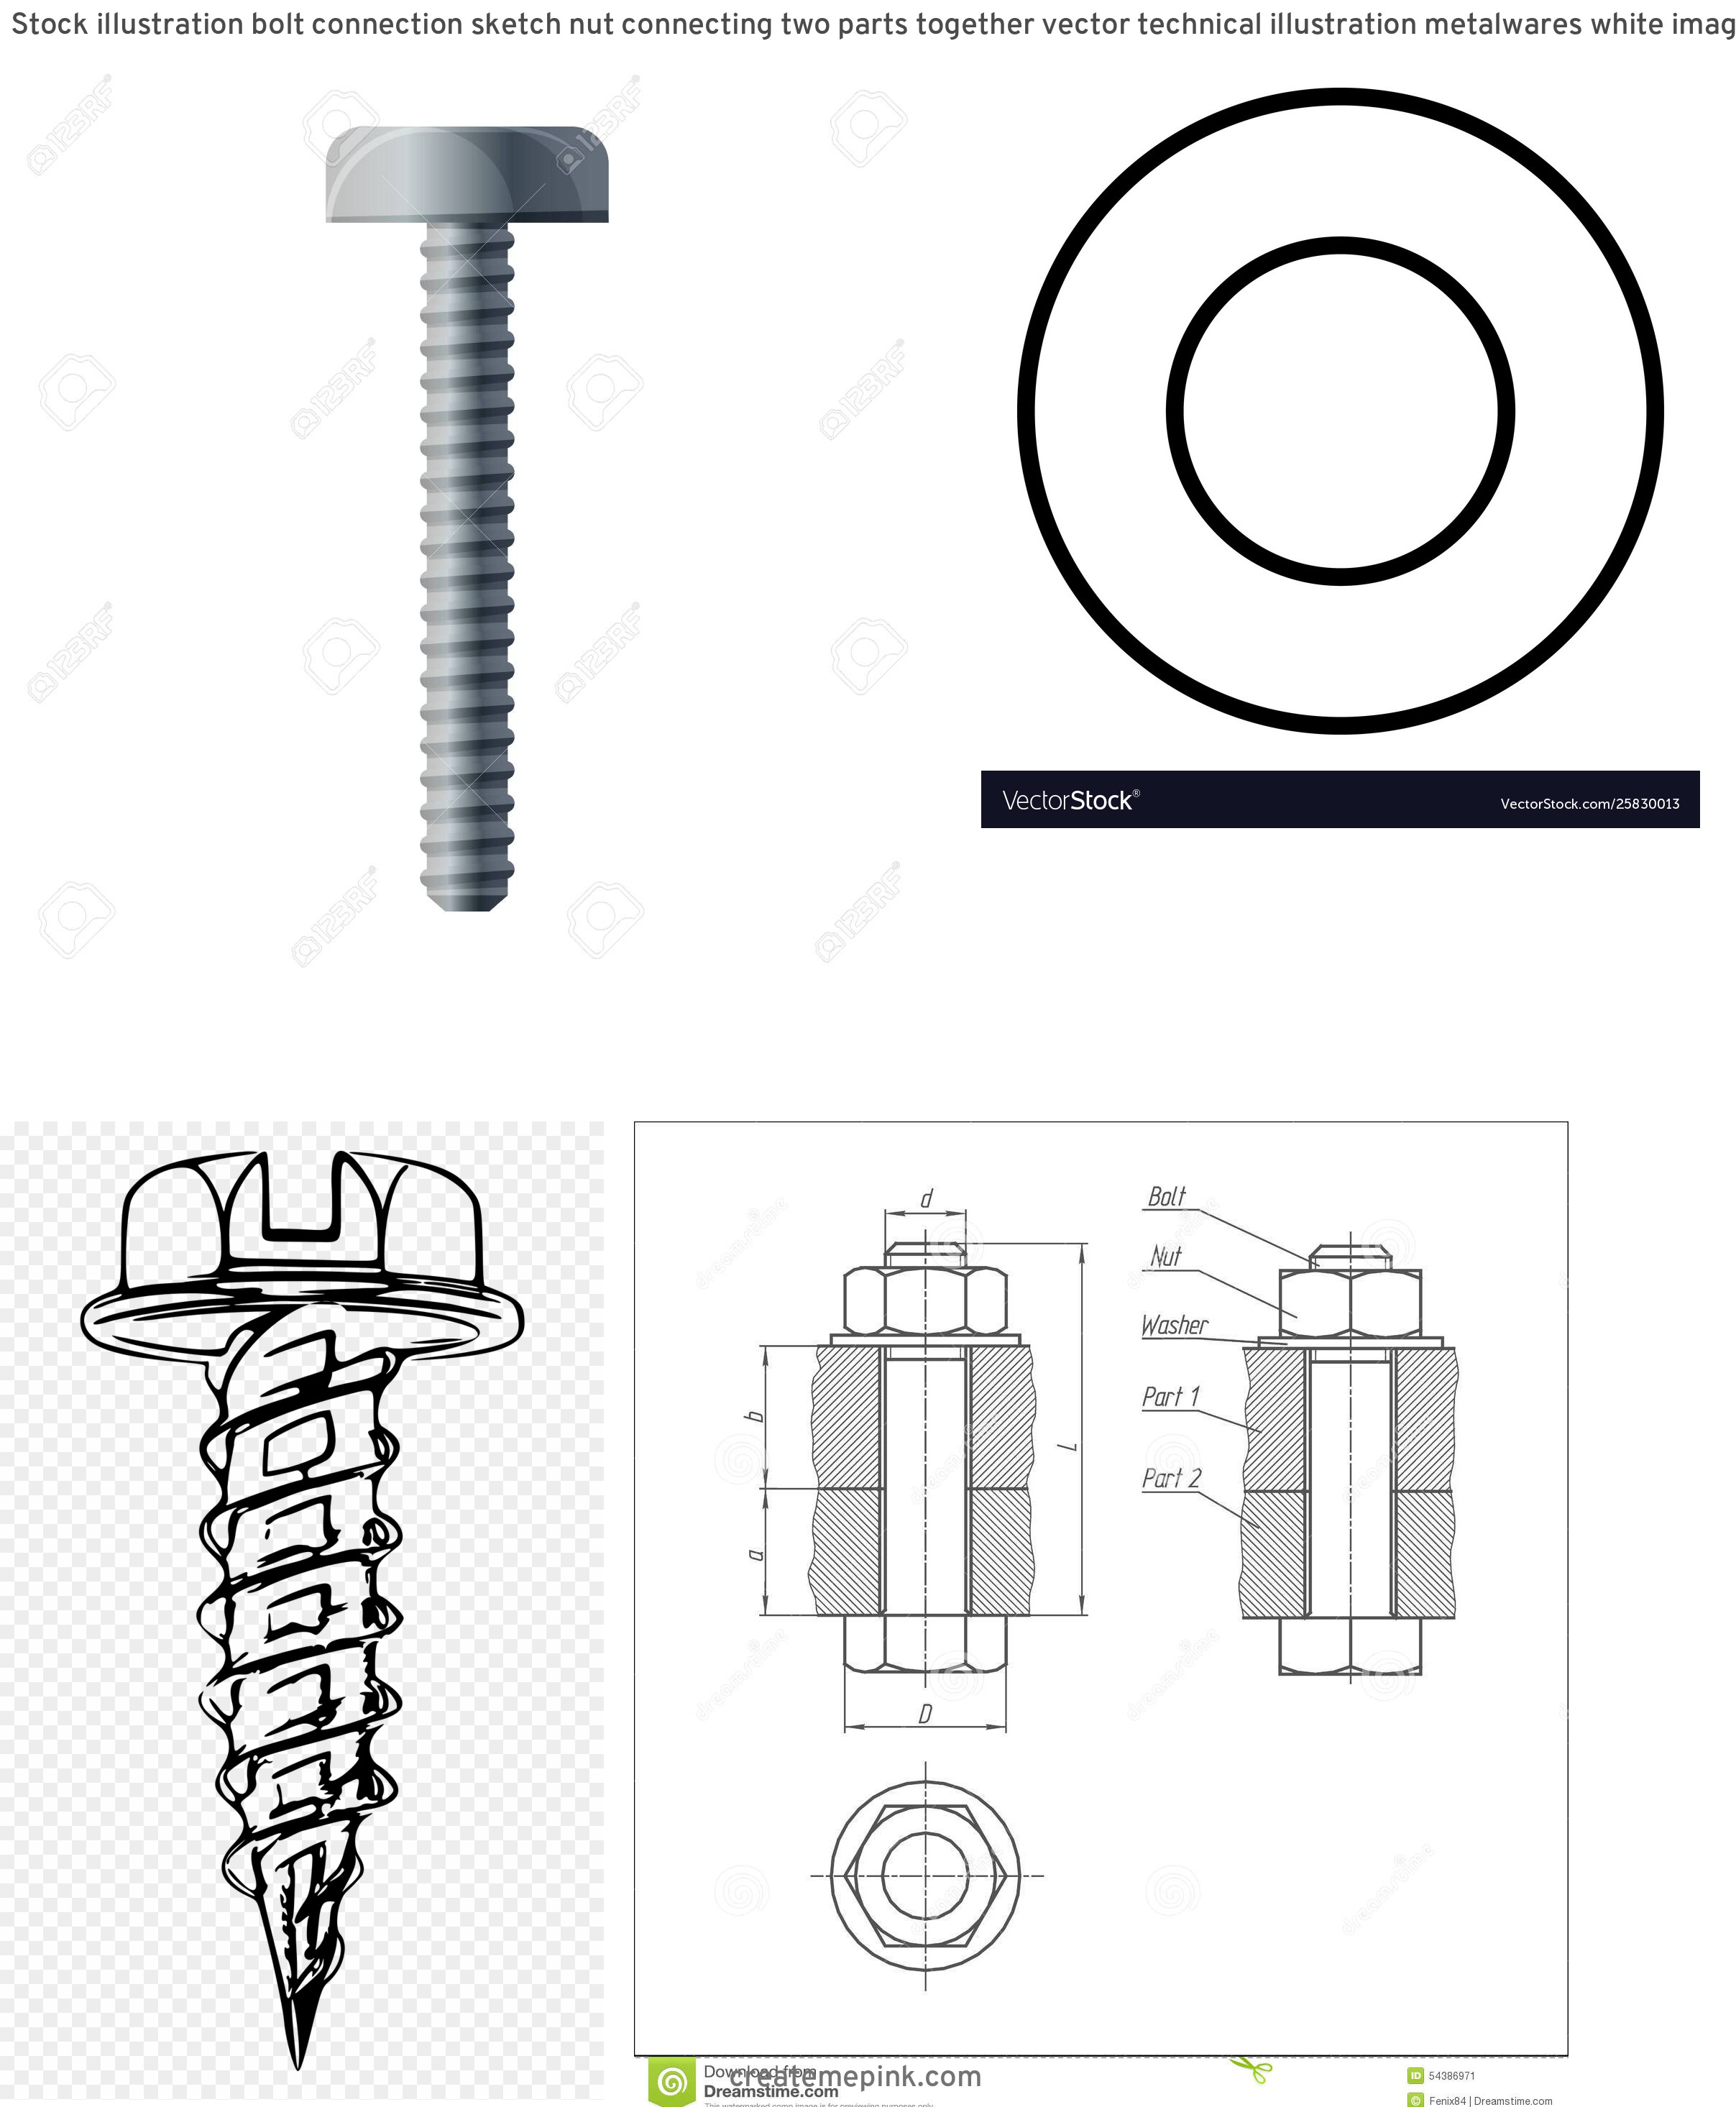 White Washer Bolt Vector: Stock Illustration Bolt Connection Sketch Nut Connecting Two Parts Together Vector Technical Illustration Metalwares White Image